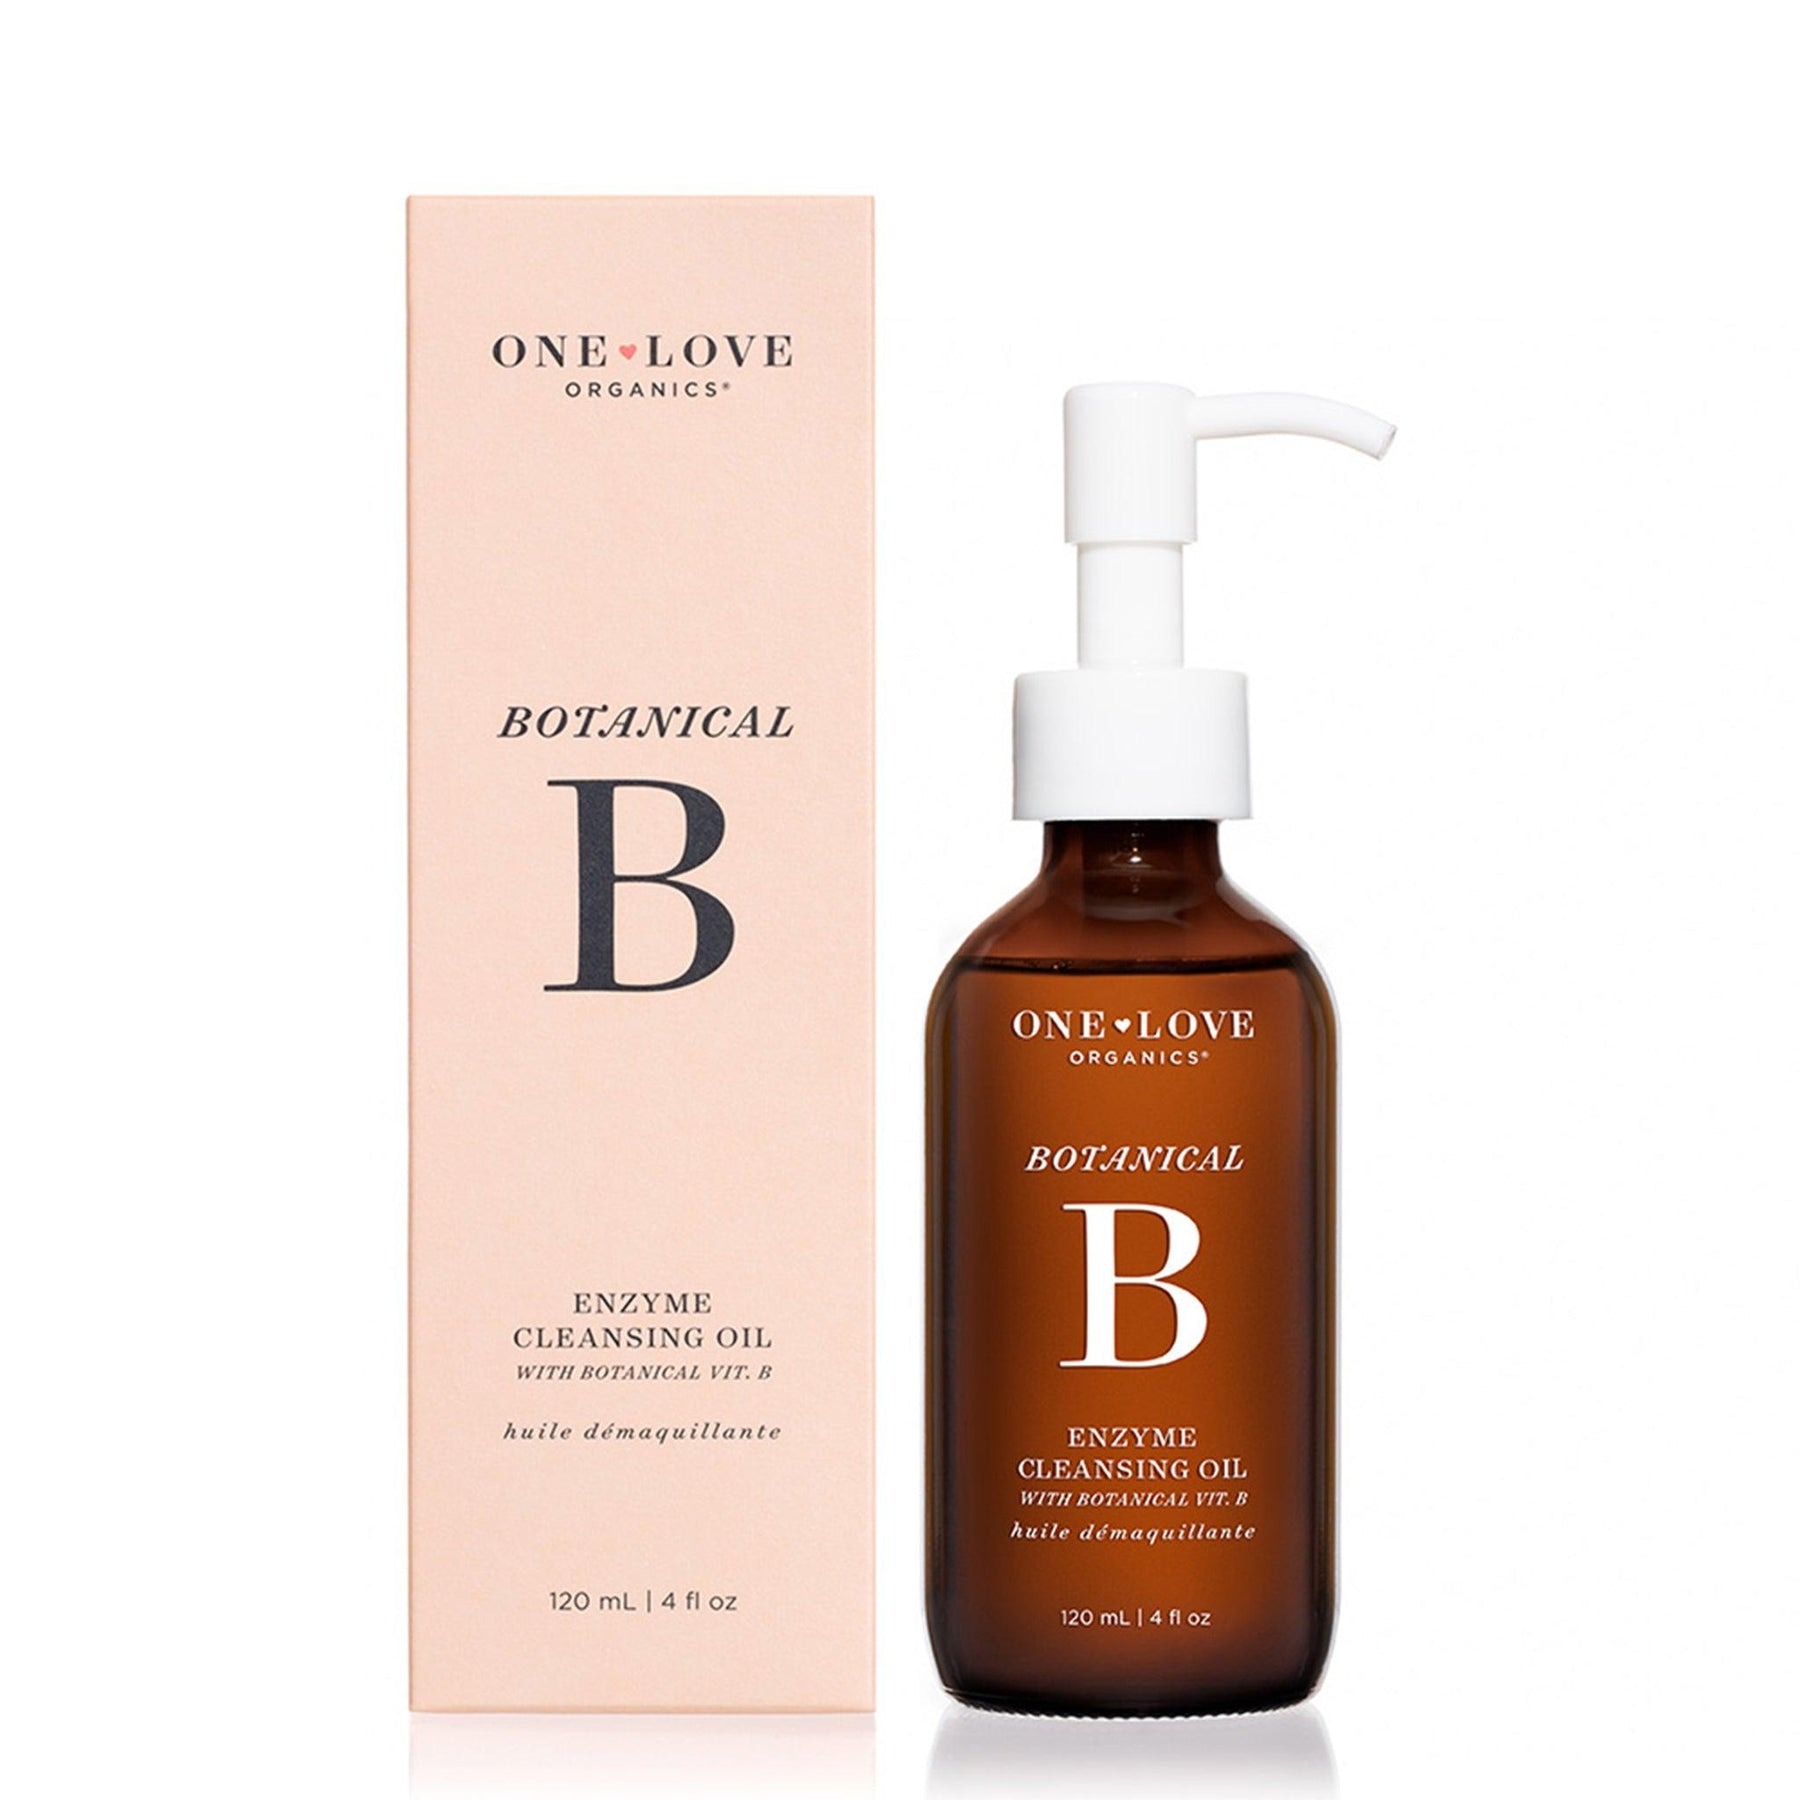 Botanical B Enzyme Cleansing Oil